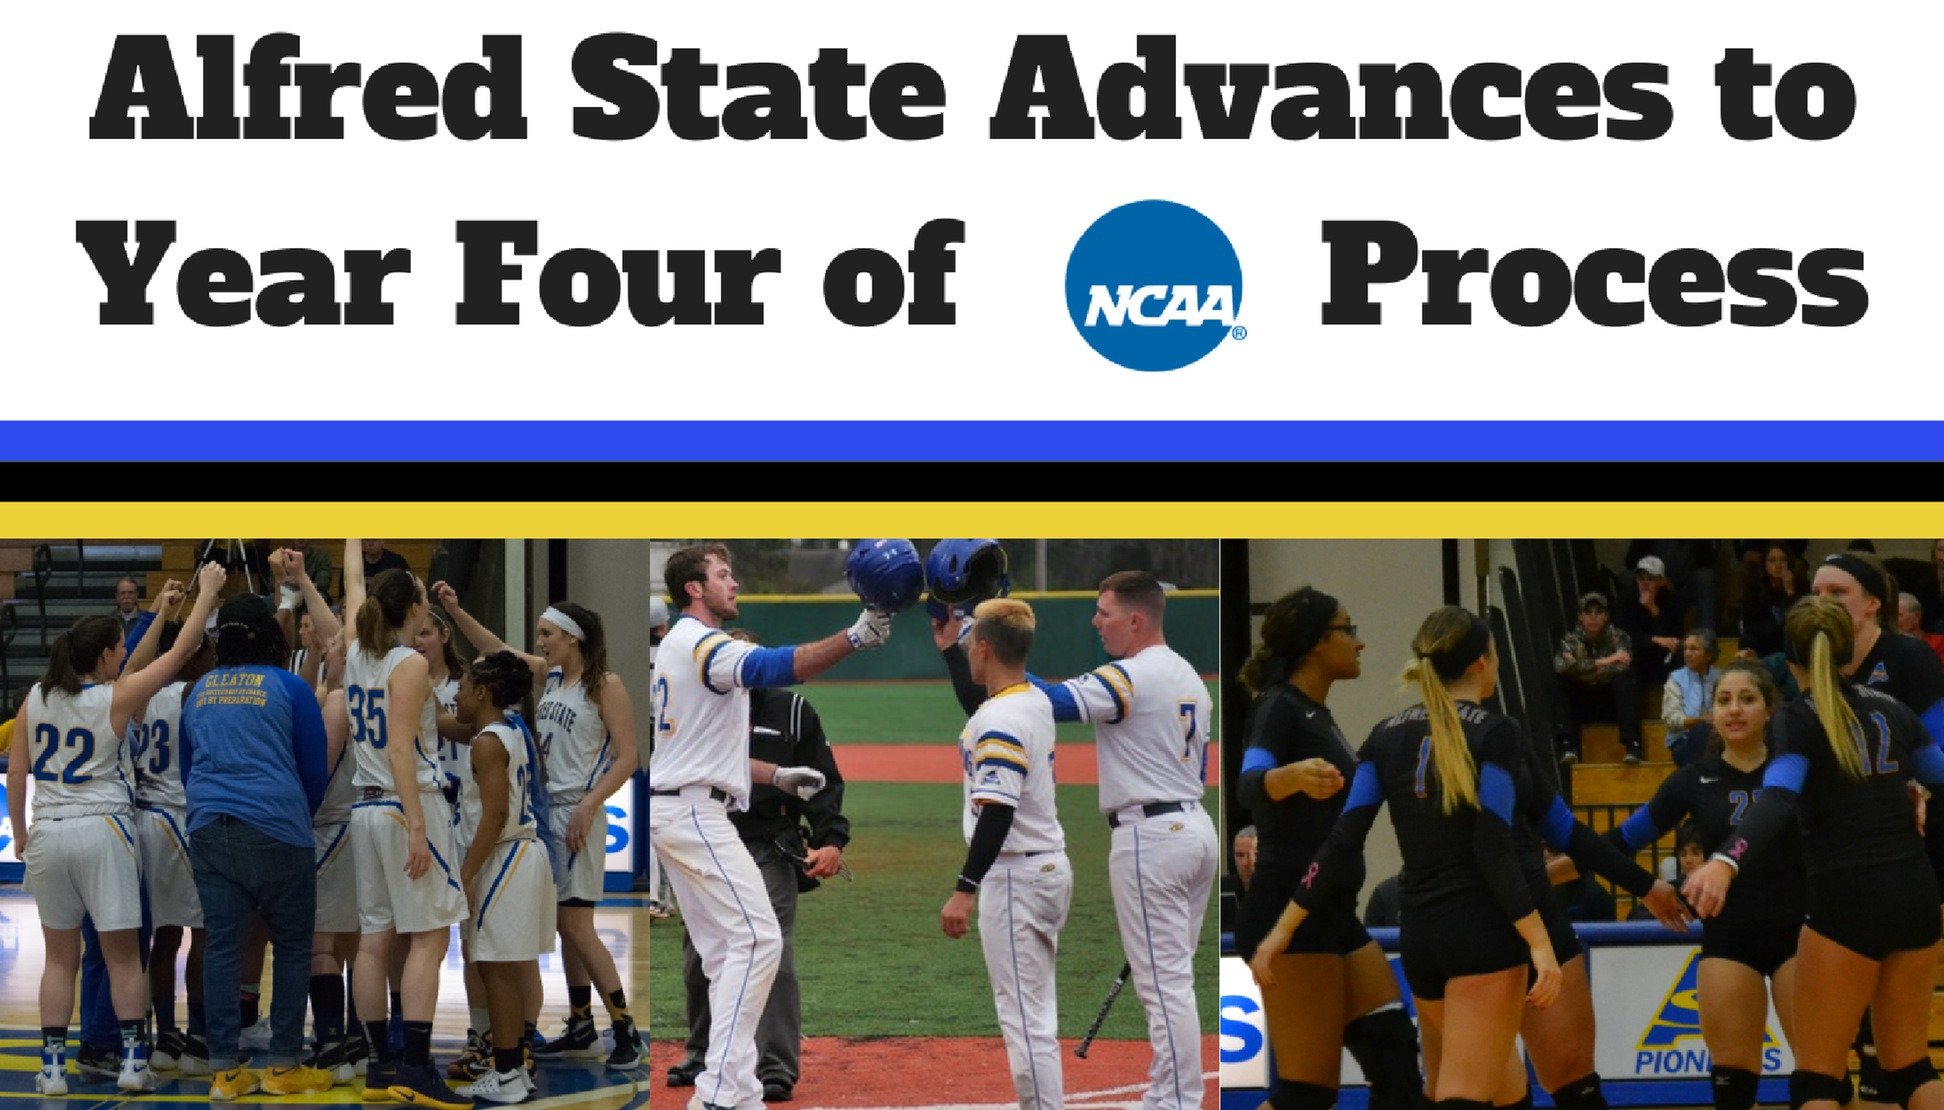 Alfred State Advances to Year Four of NCAA Process